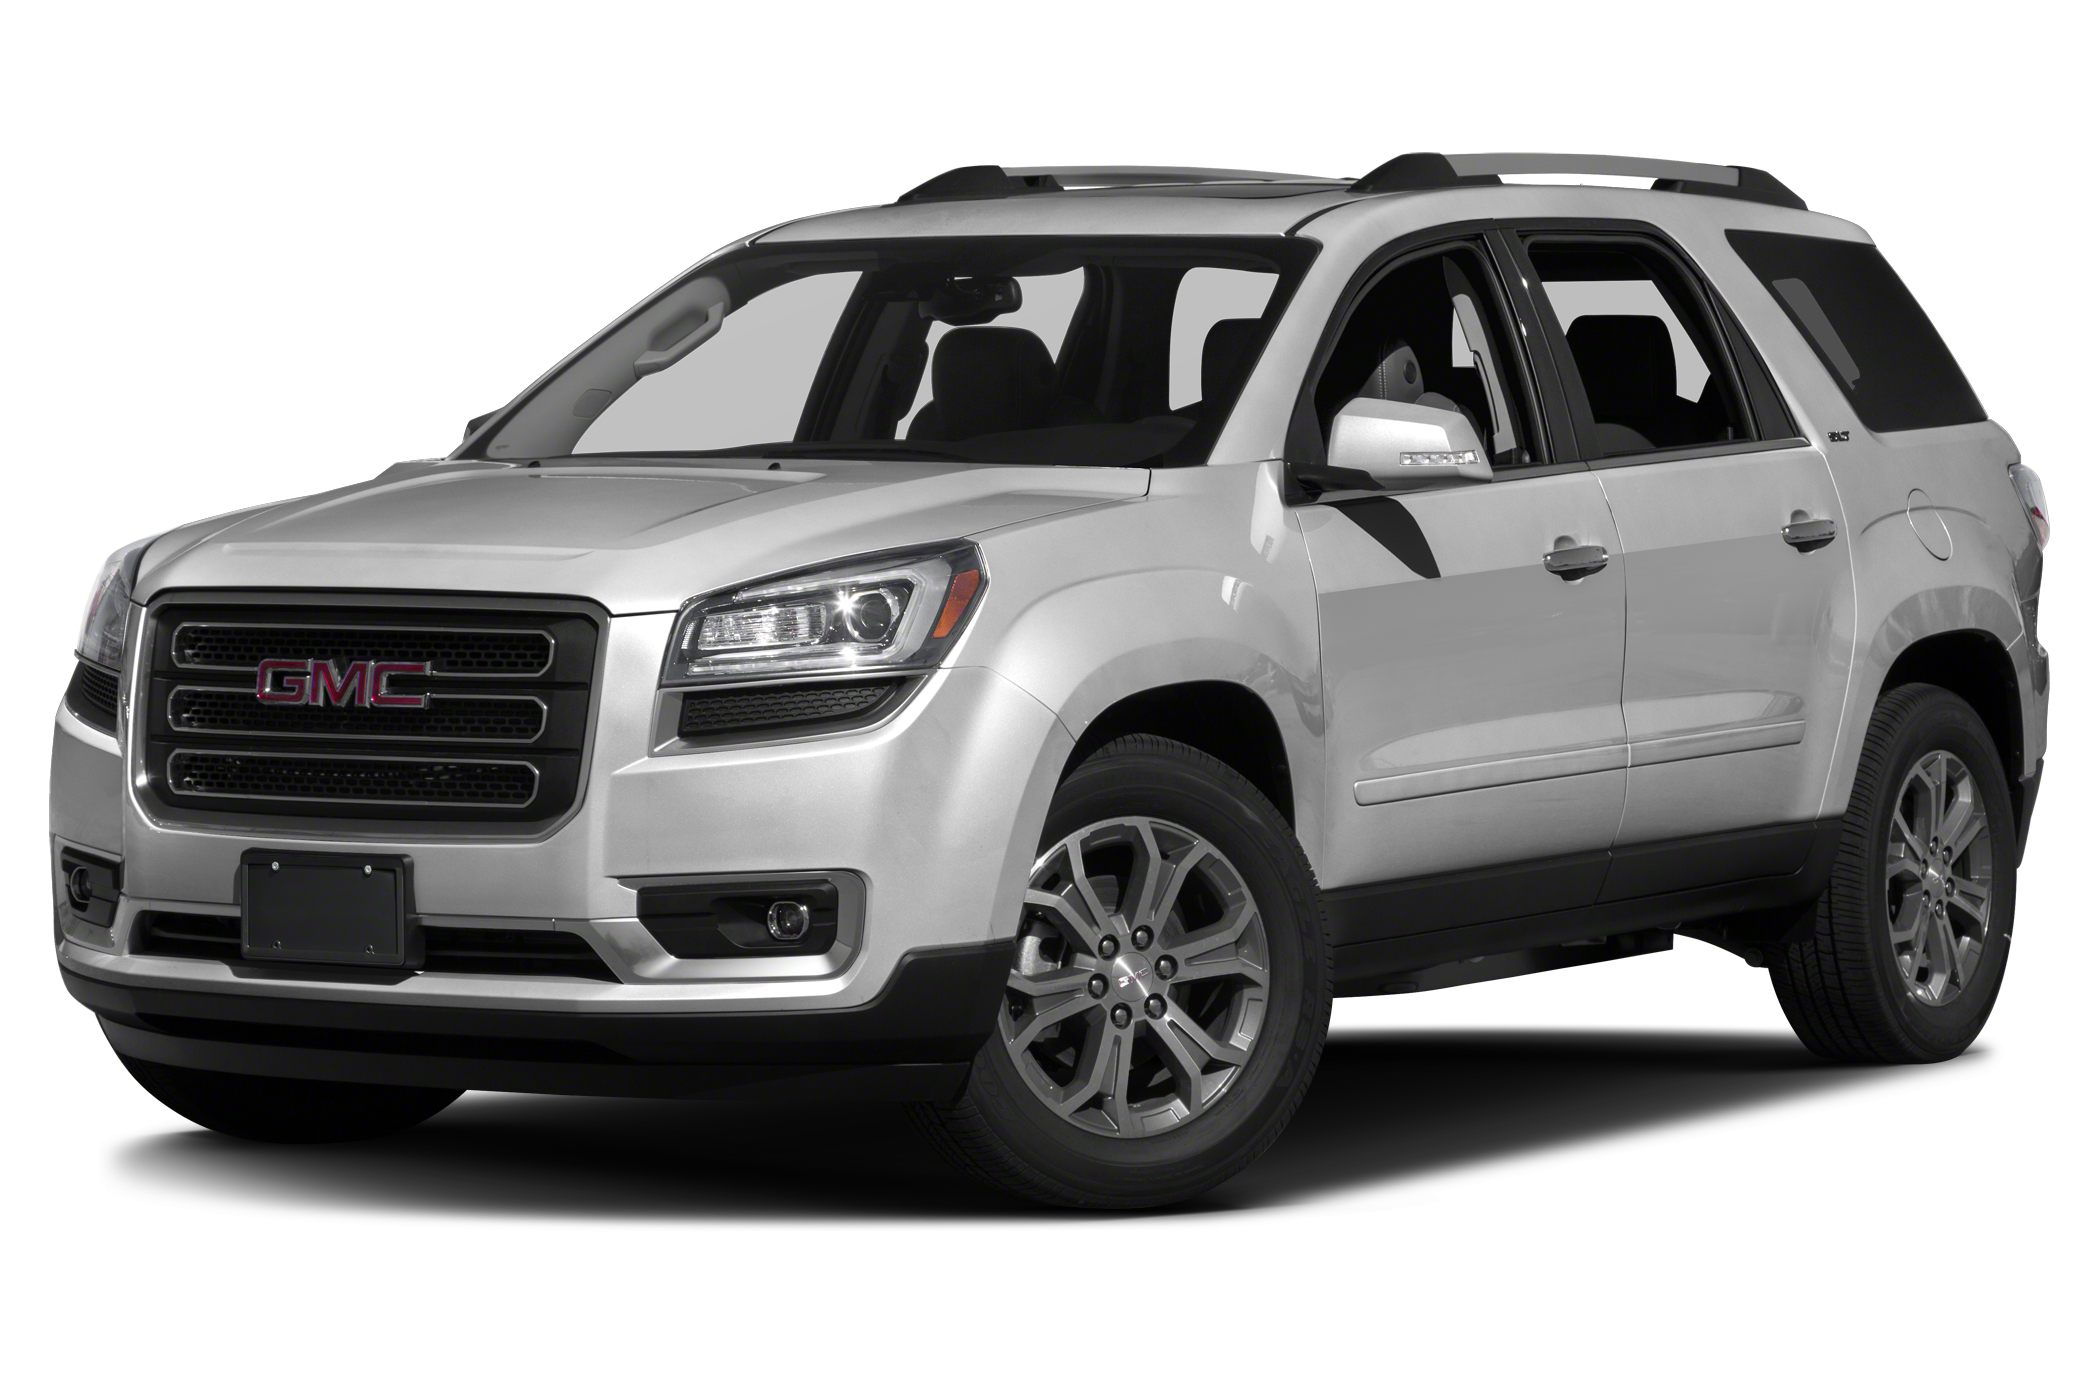 Certified 2017 GMC Acadia Limited Limited SUV in Lyndhurst, NJ near 07071.